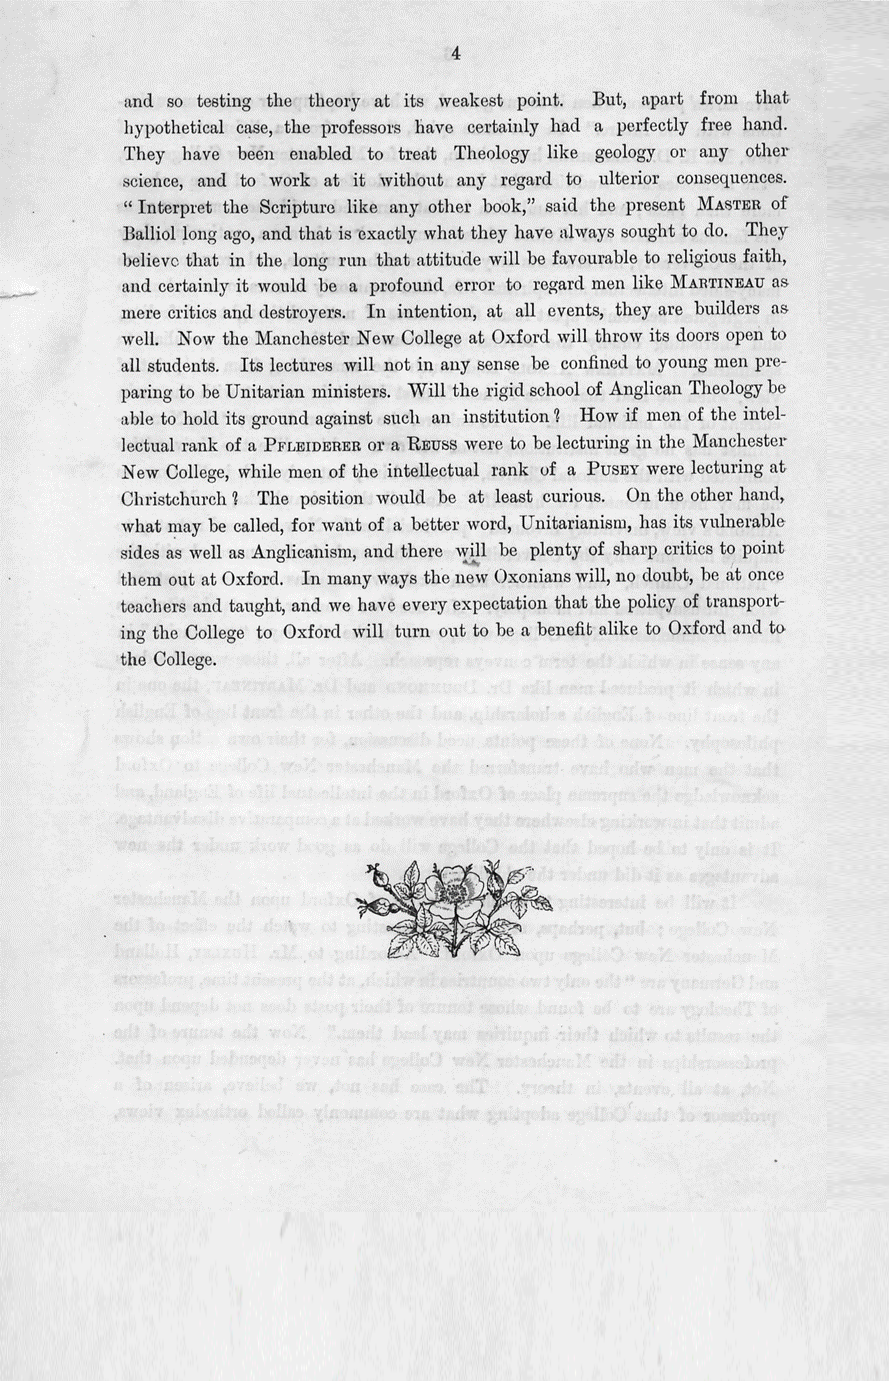 pamphlet page